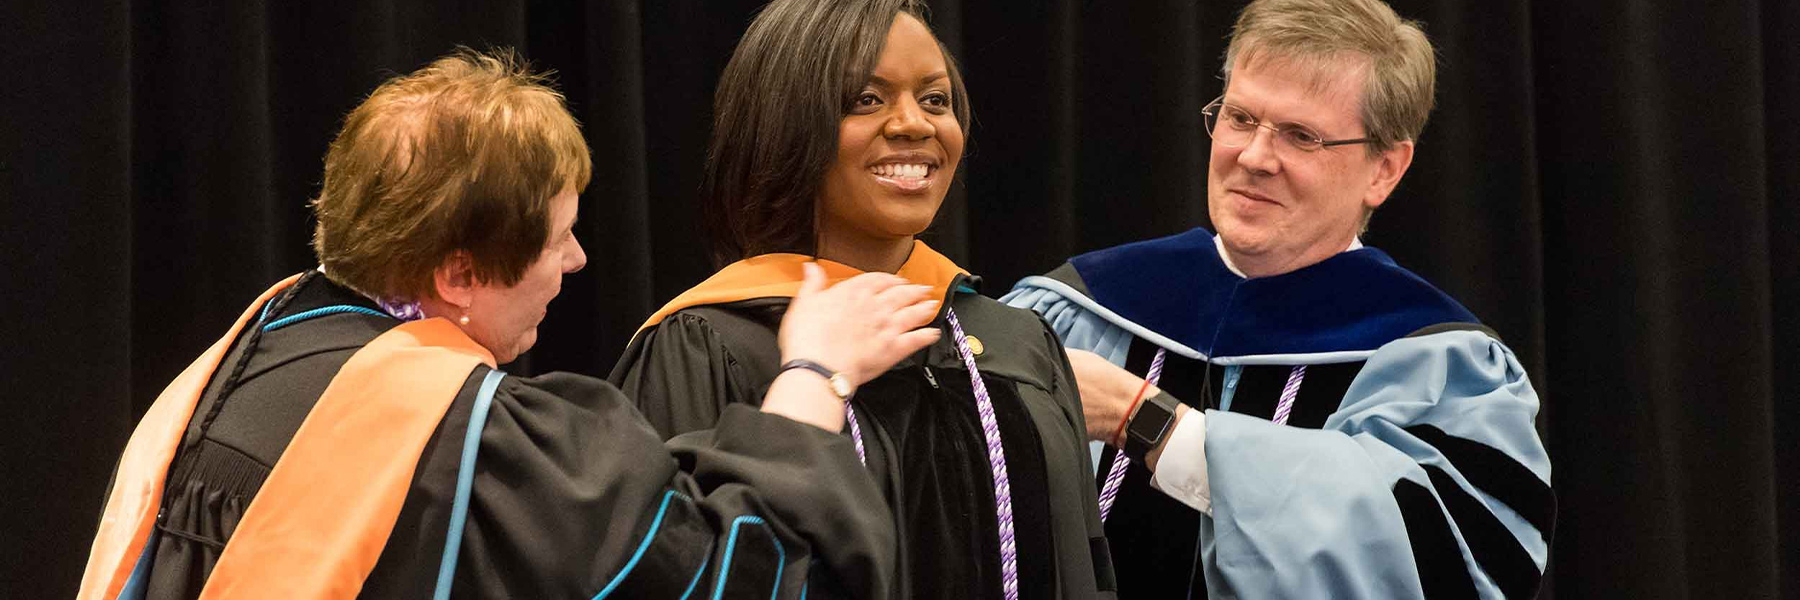 smiling graduate in gown receives honors